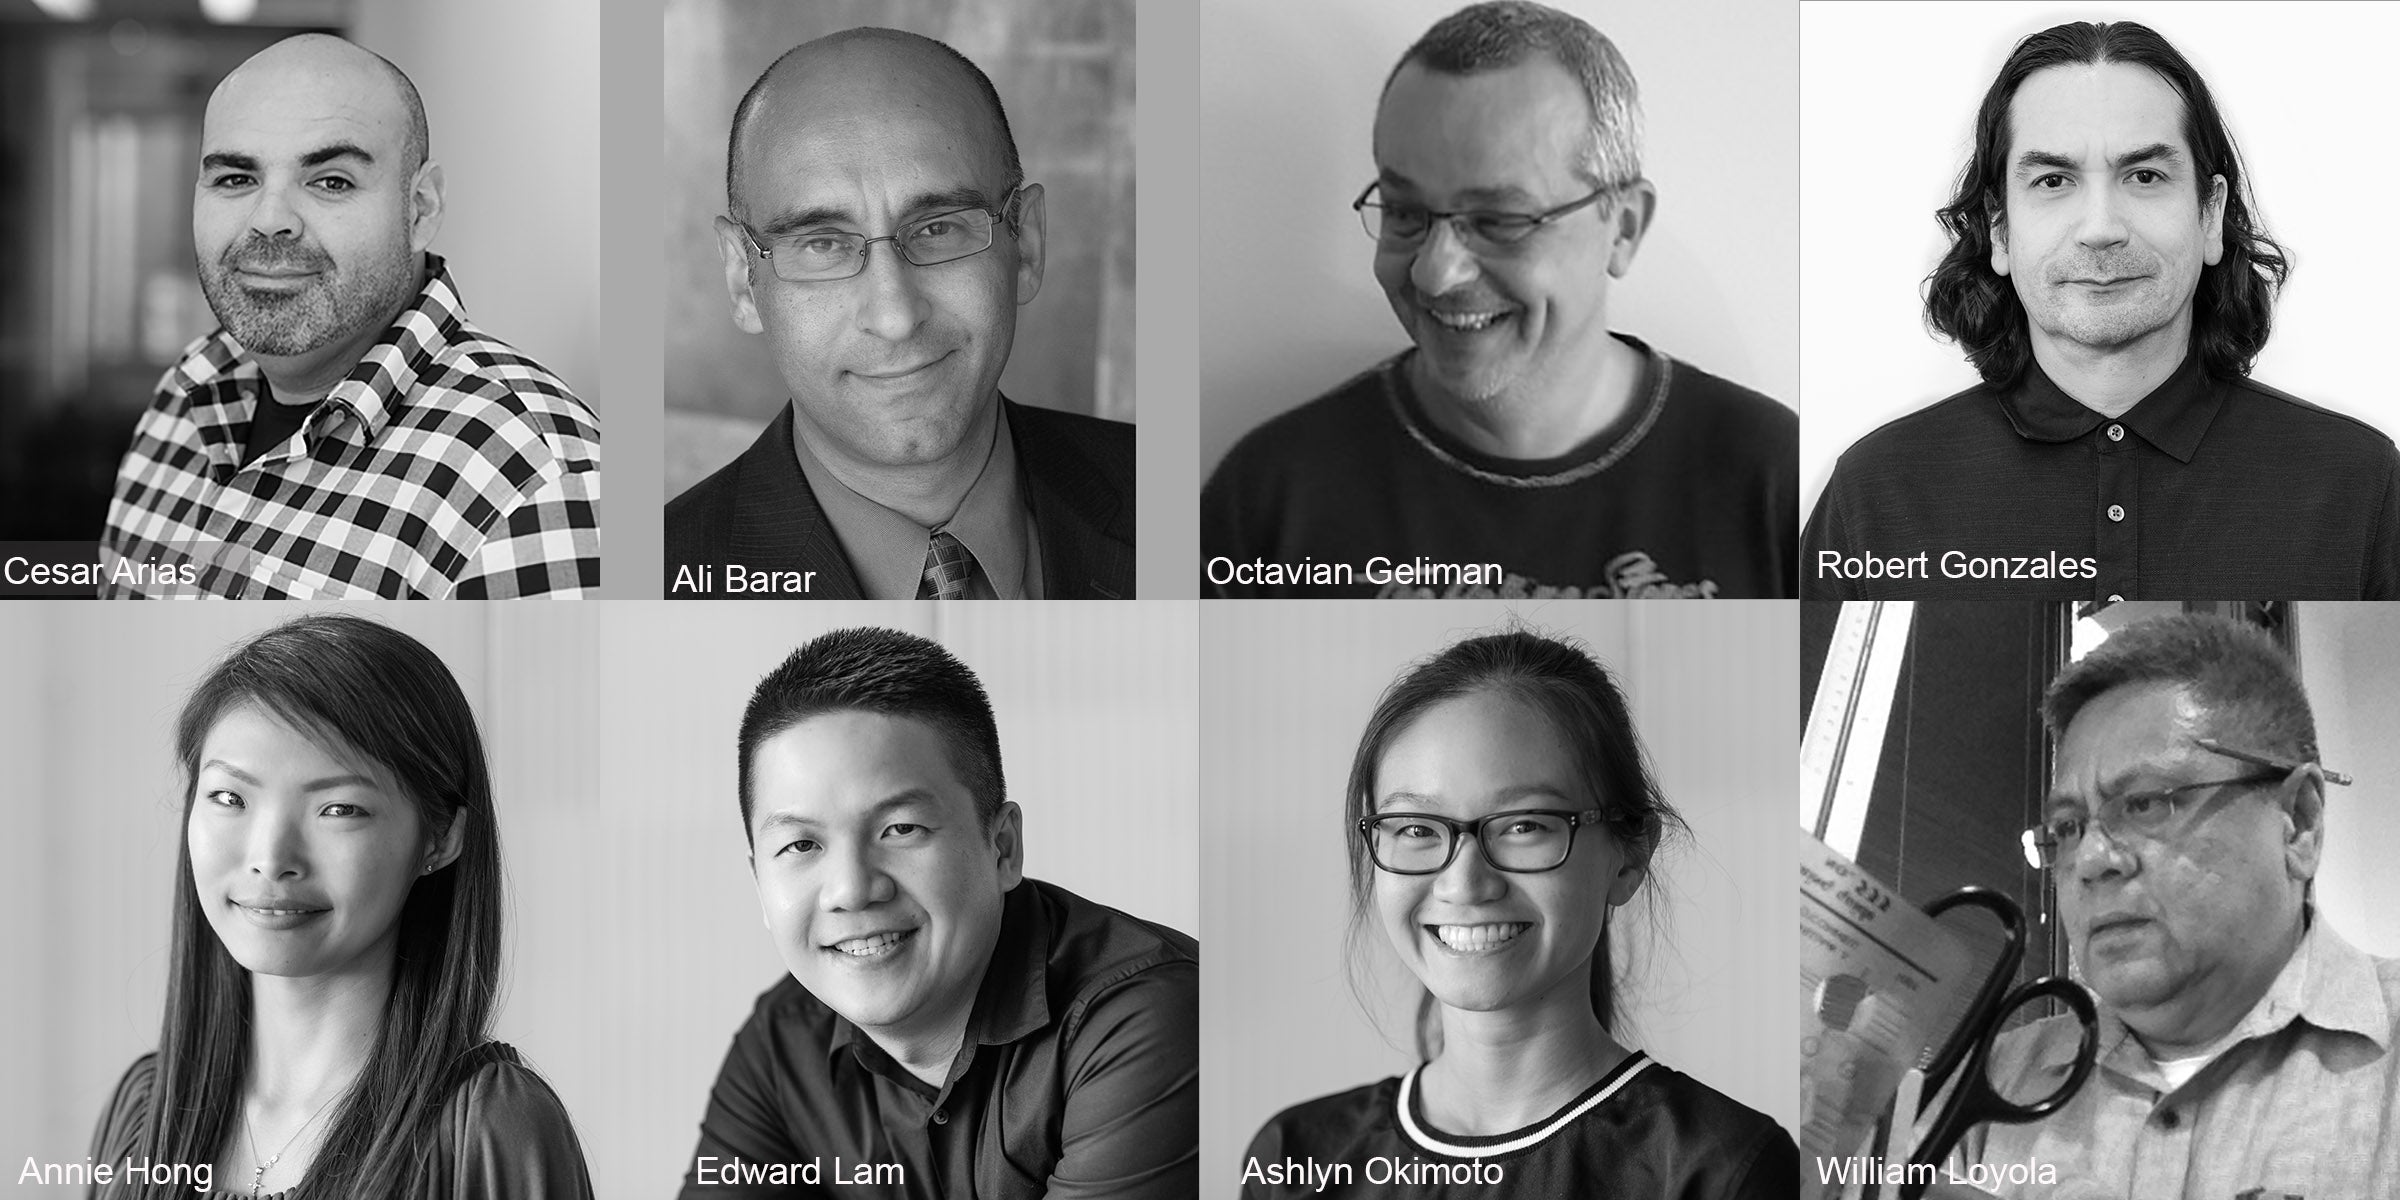 SCANPH 2018 Awards team - Gonzalez Goodale Architects